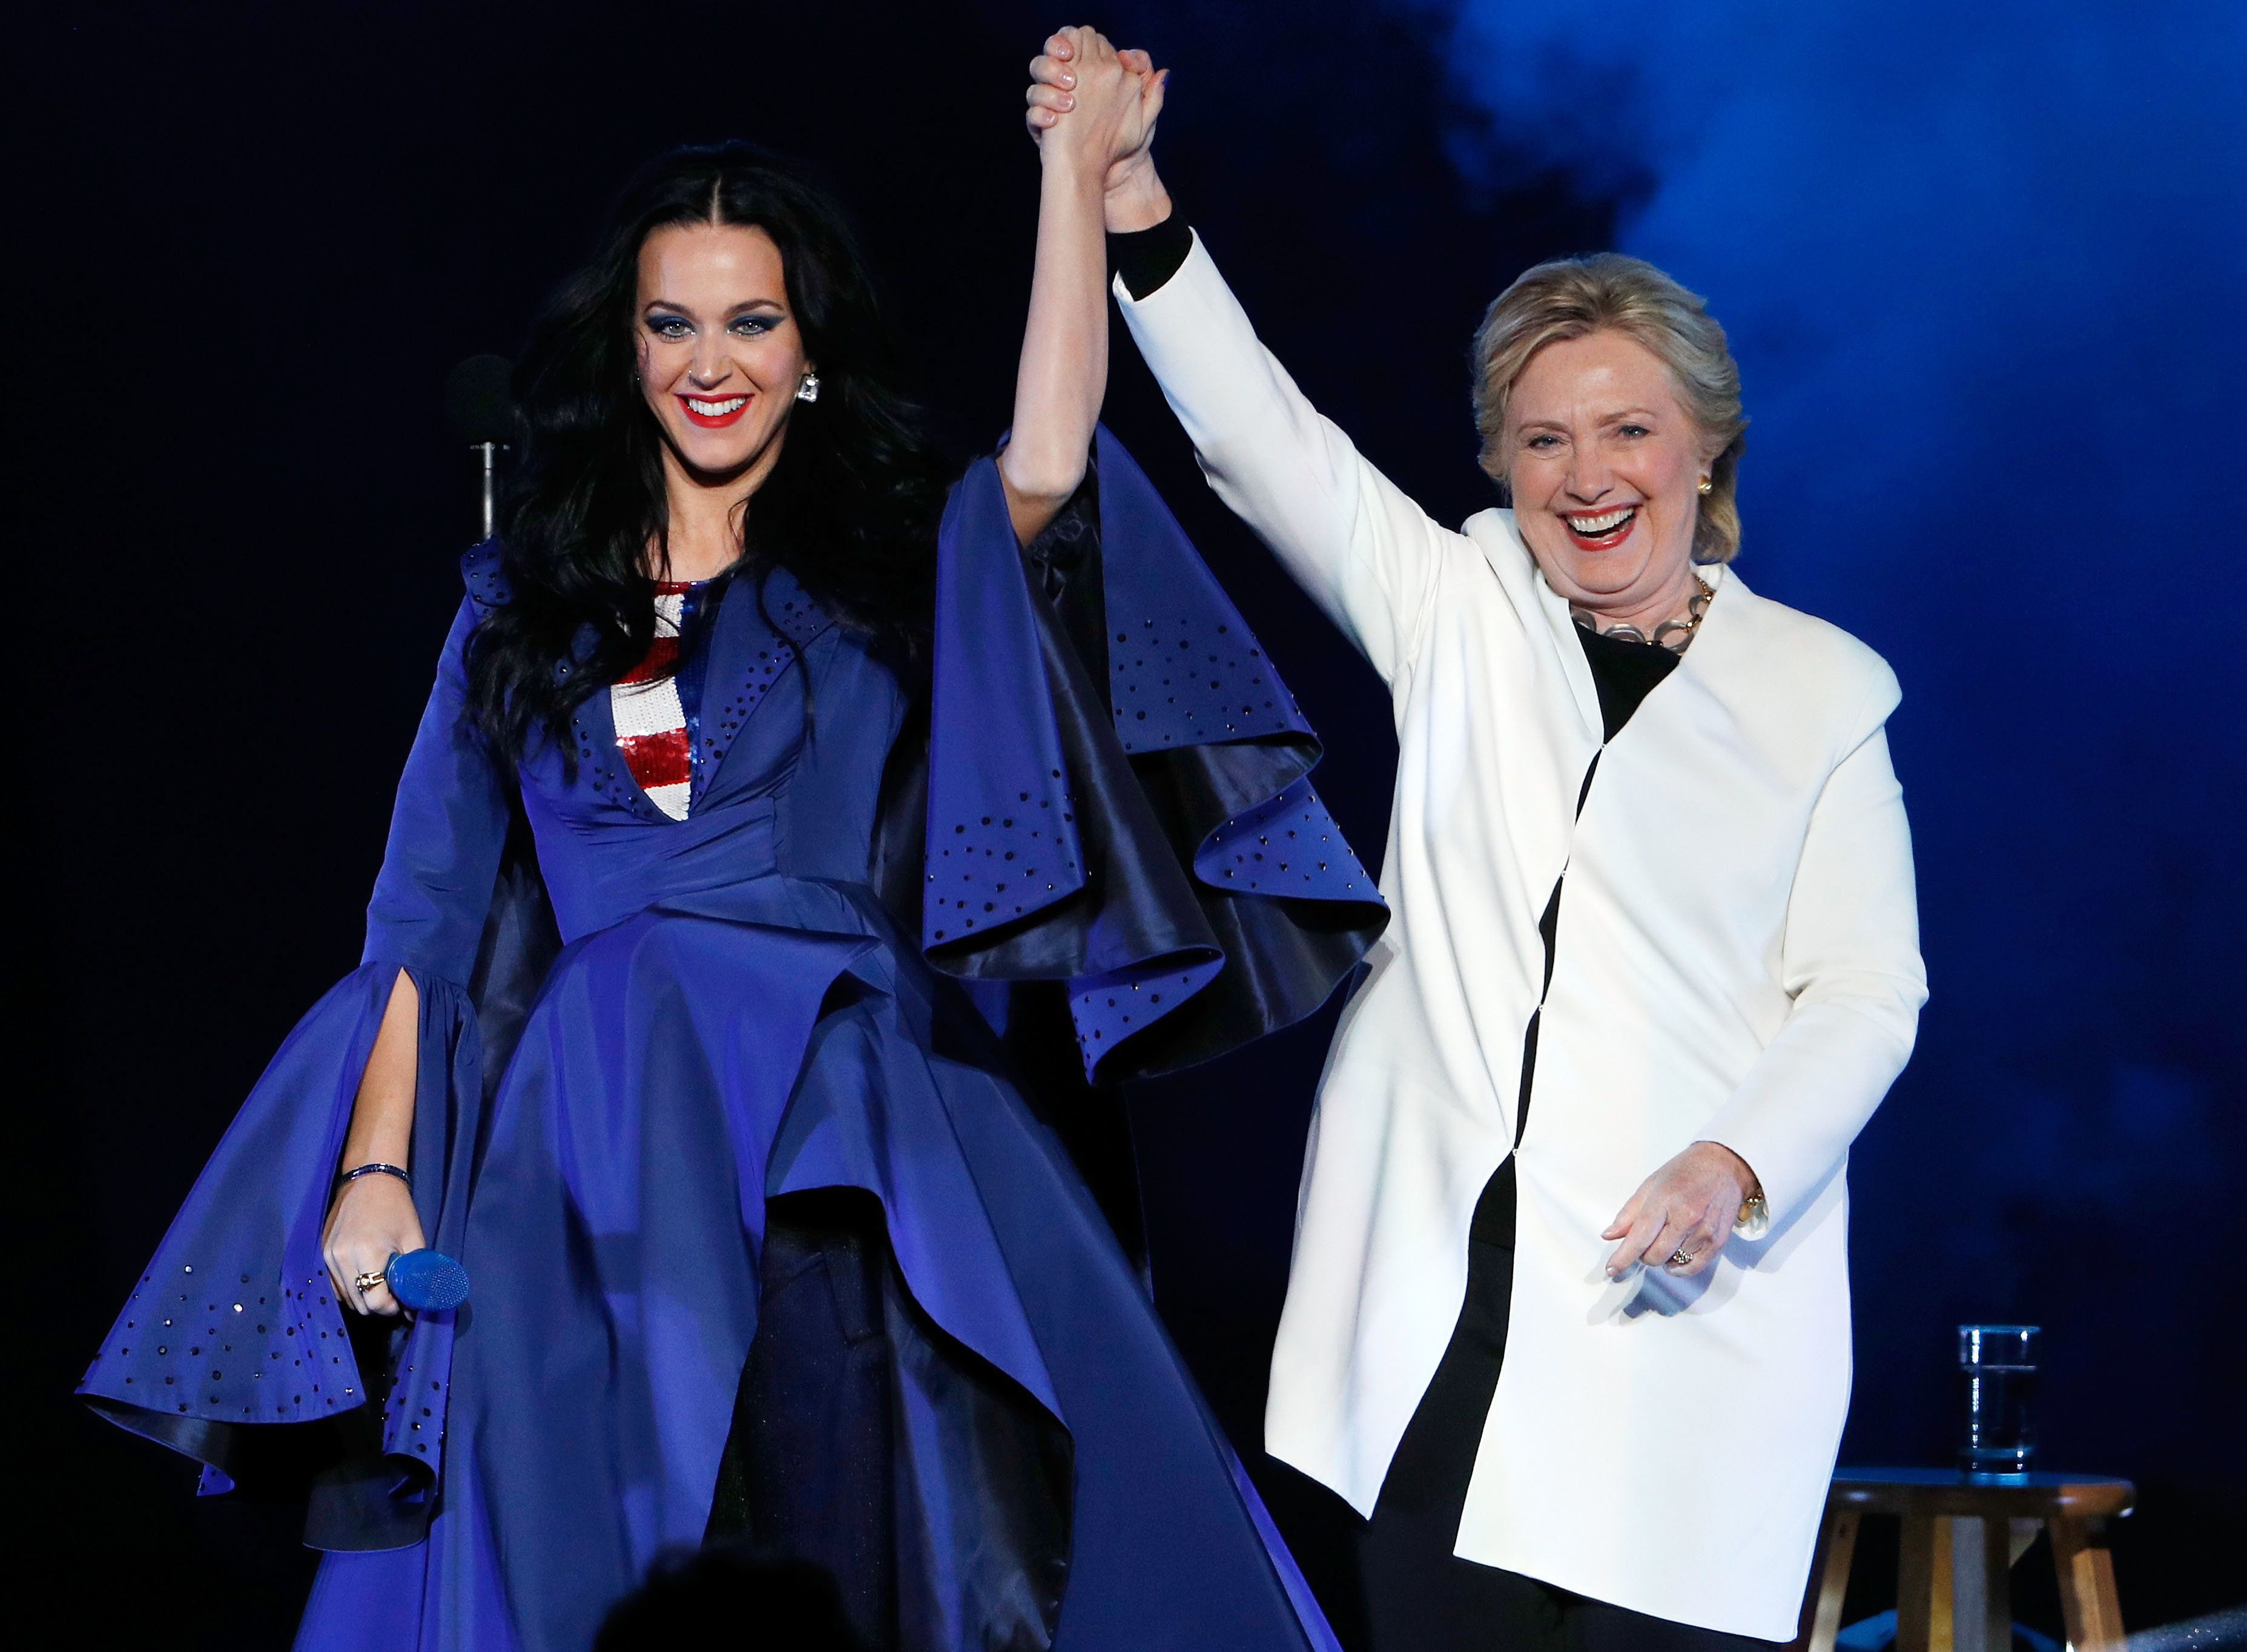 Katy Perry performs with Hillary Clinton at a rally in November.